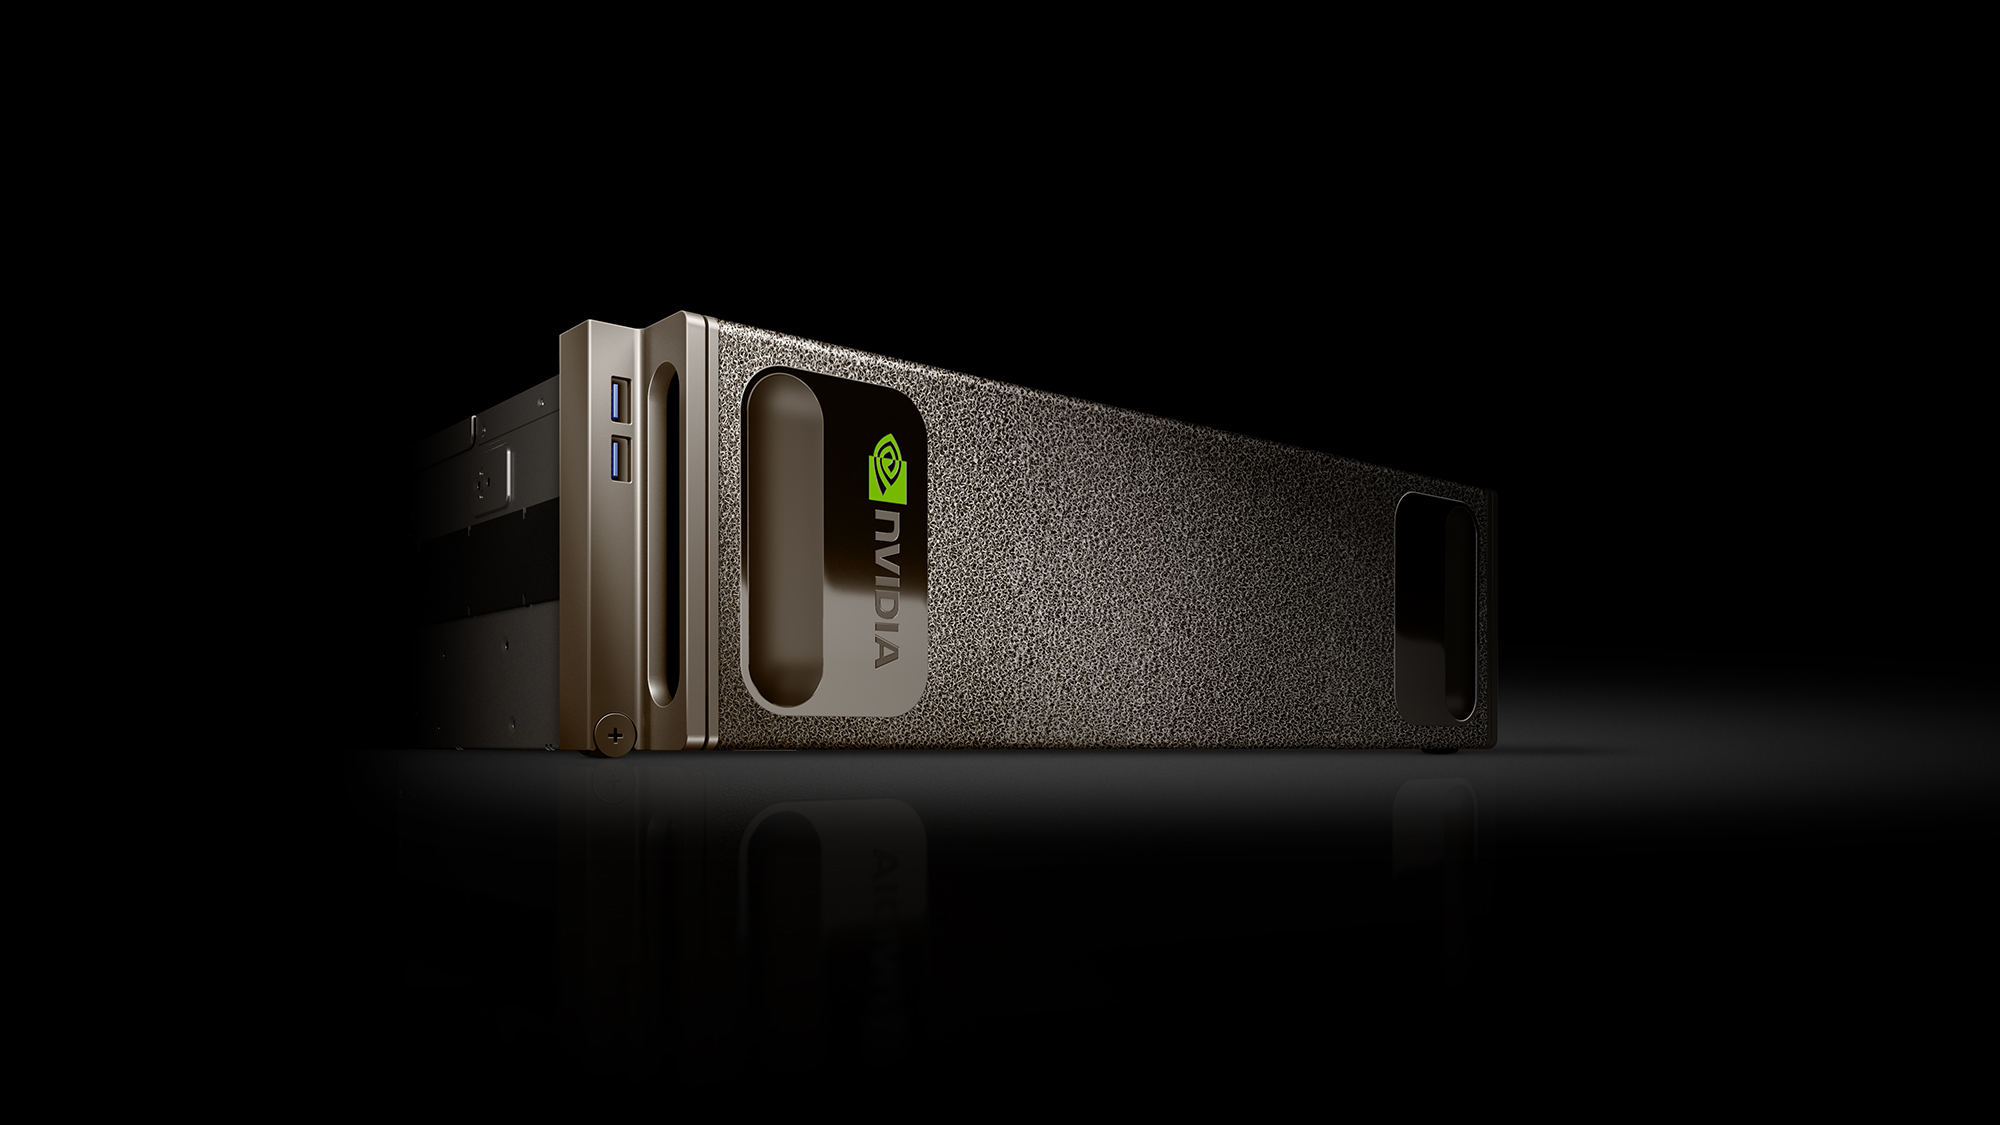 Nvidia Dgx Saturnv Supercomputer With Tesla P100 Launched